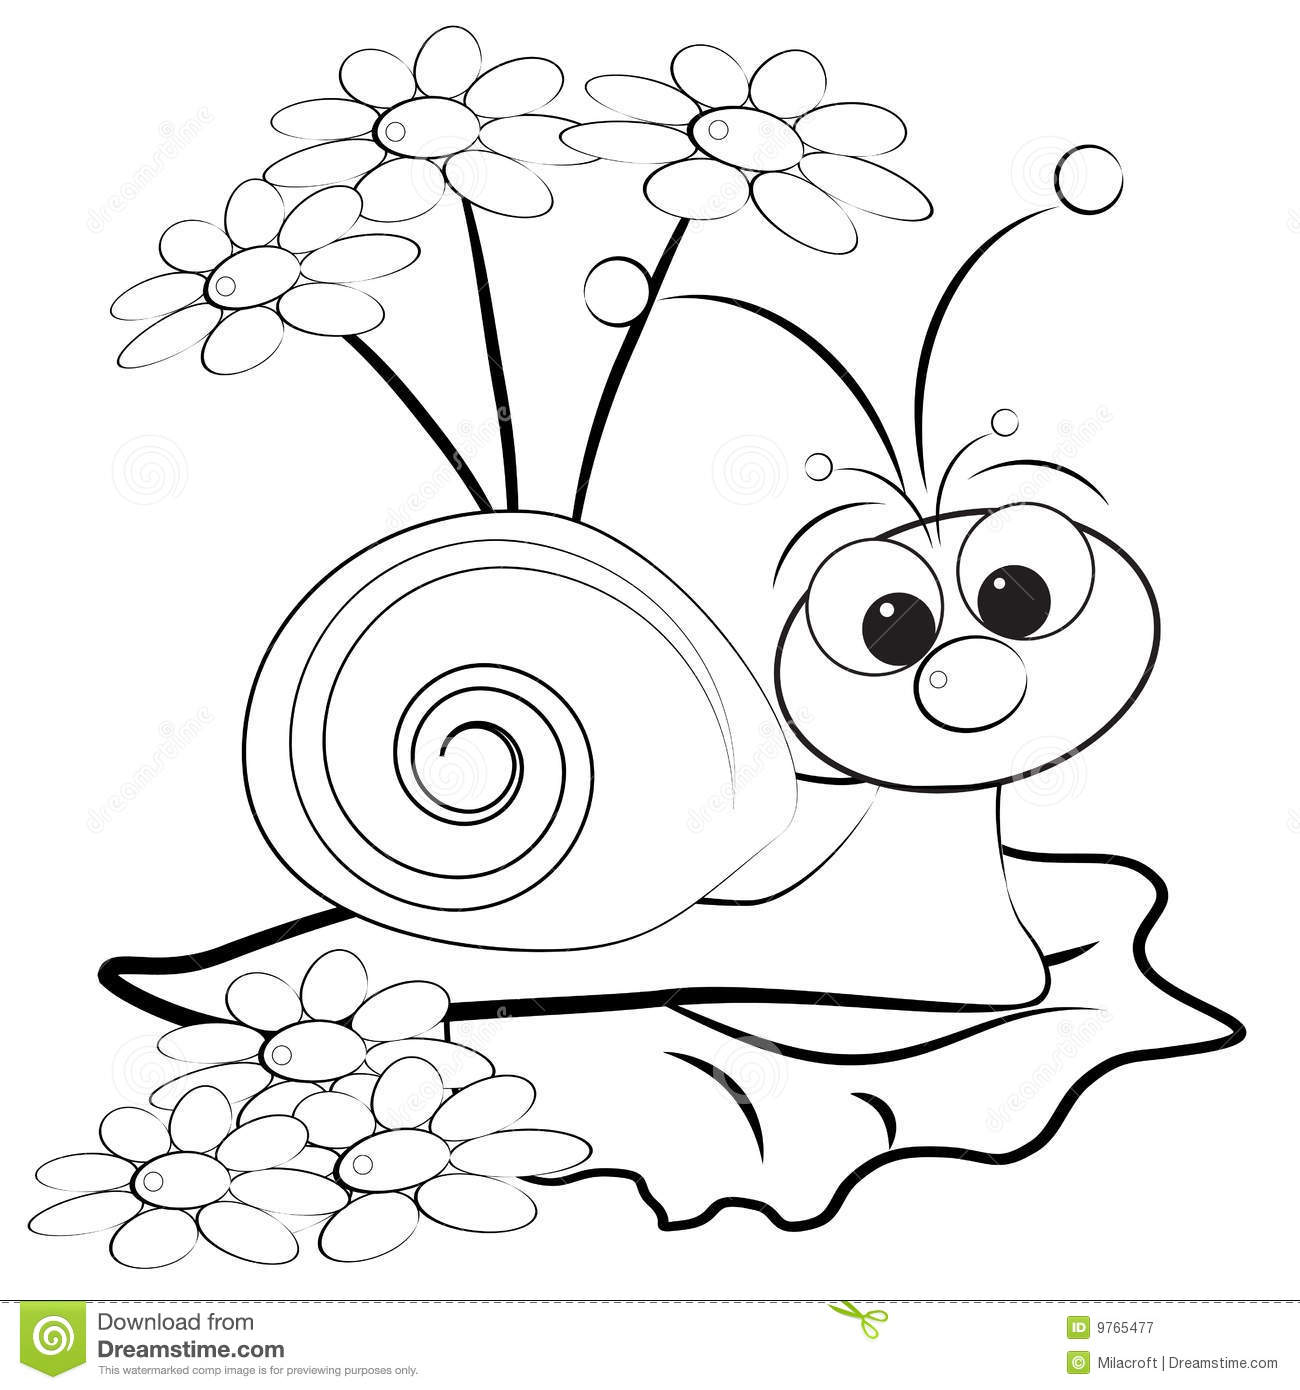 coloring page snail and daisy royalty free stock photography